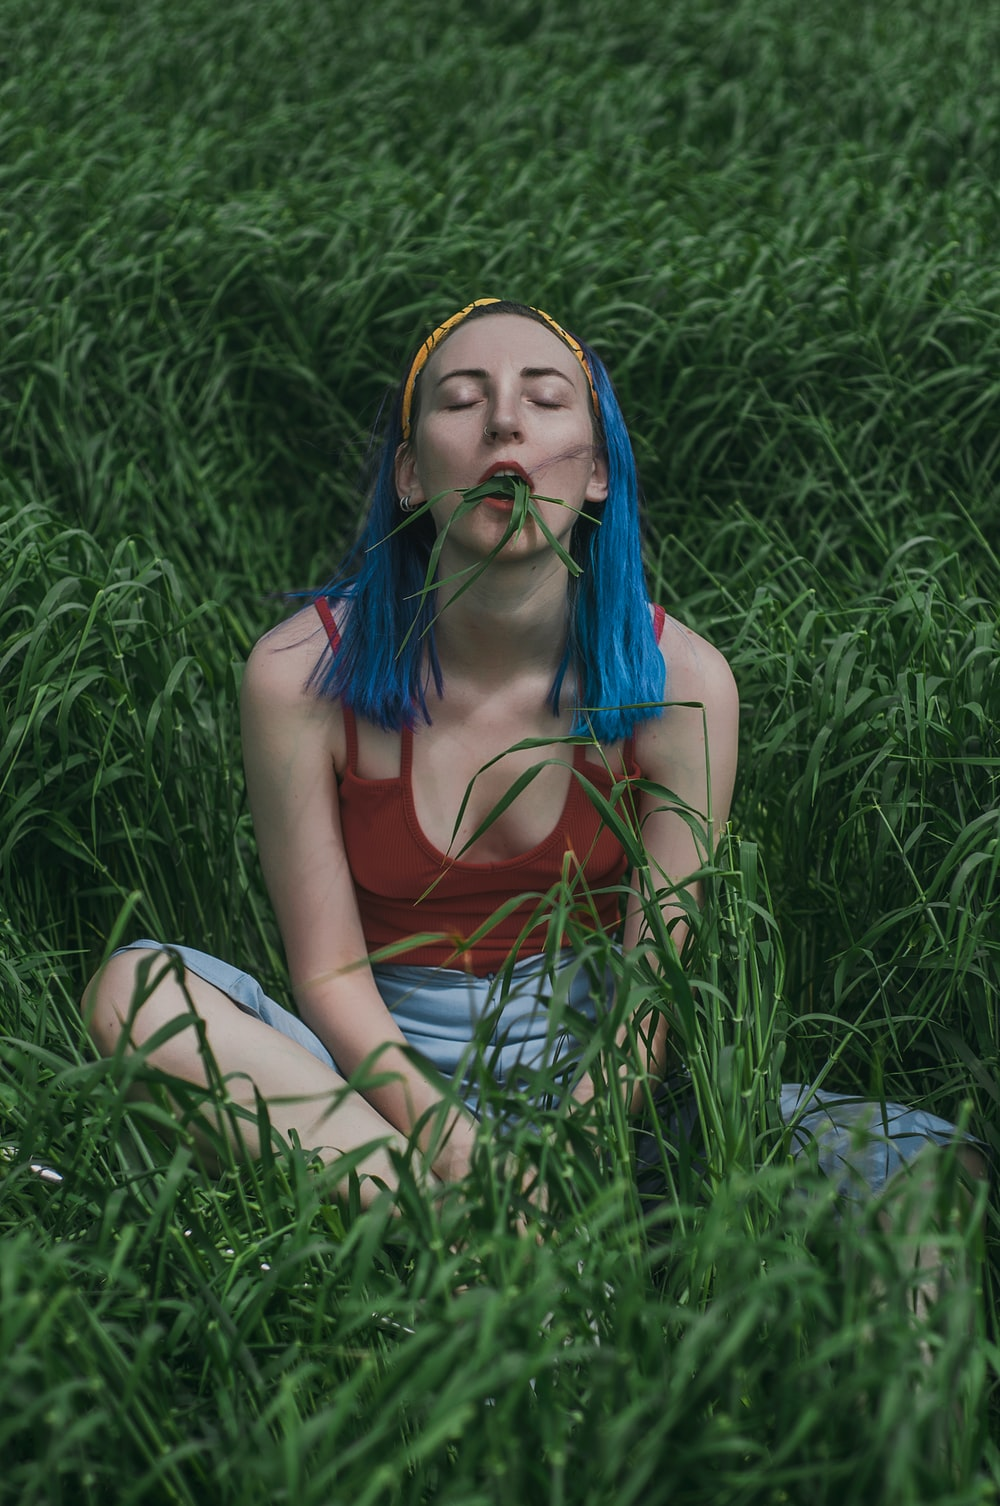 woman sits on grass